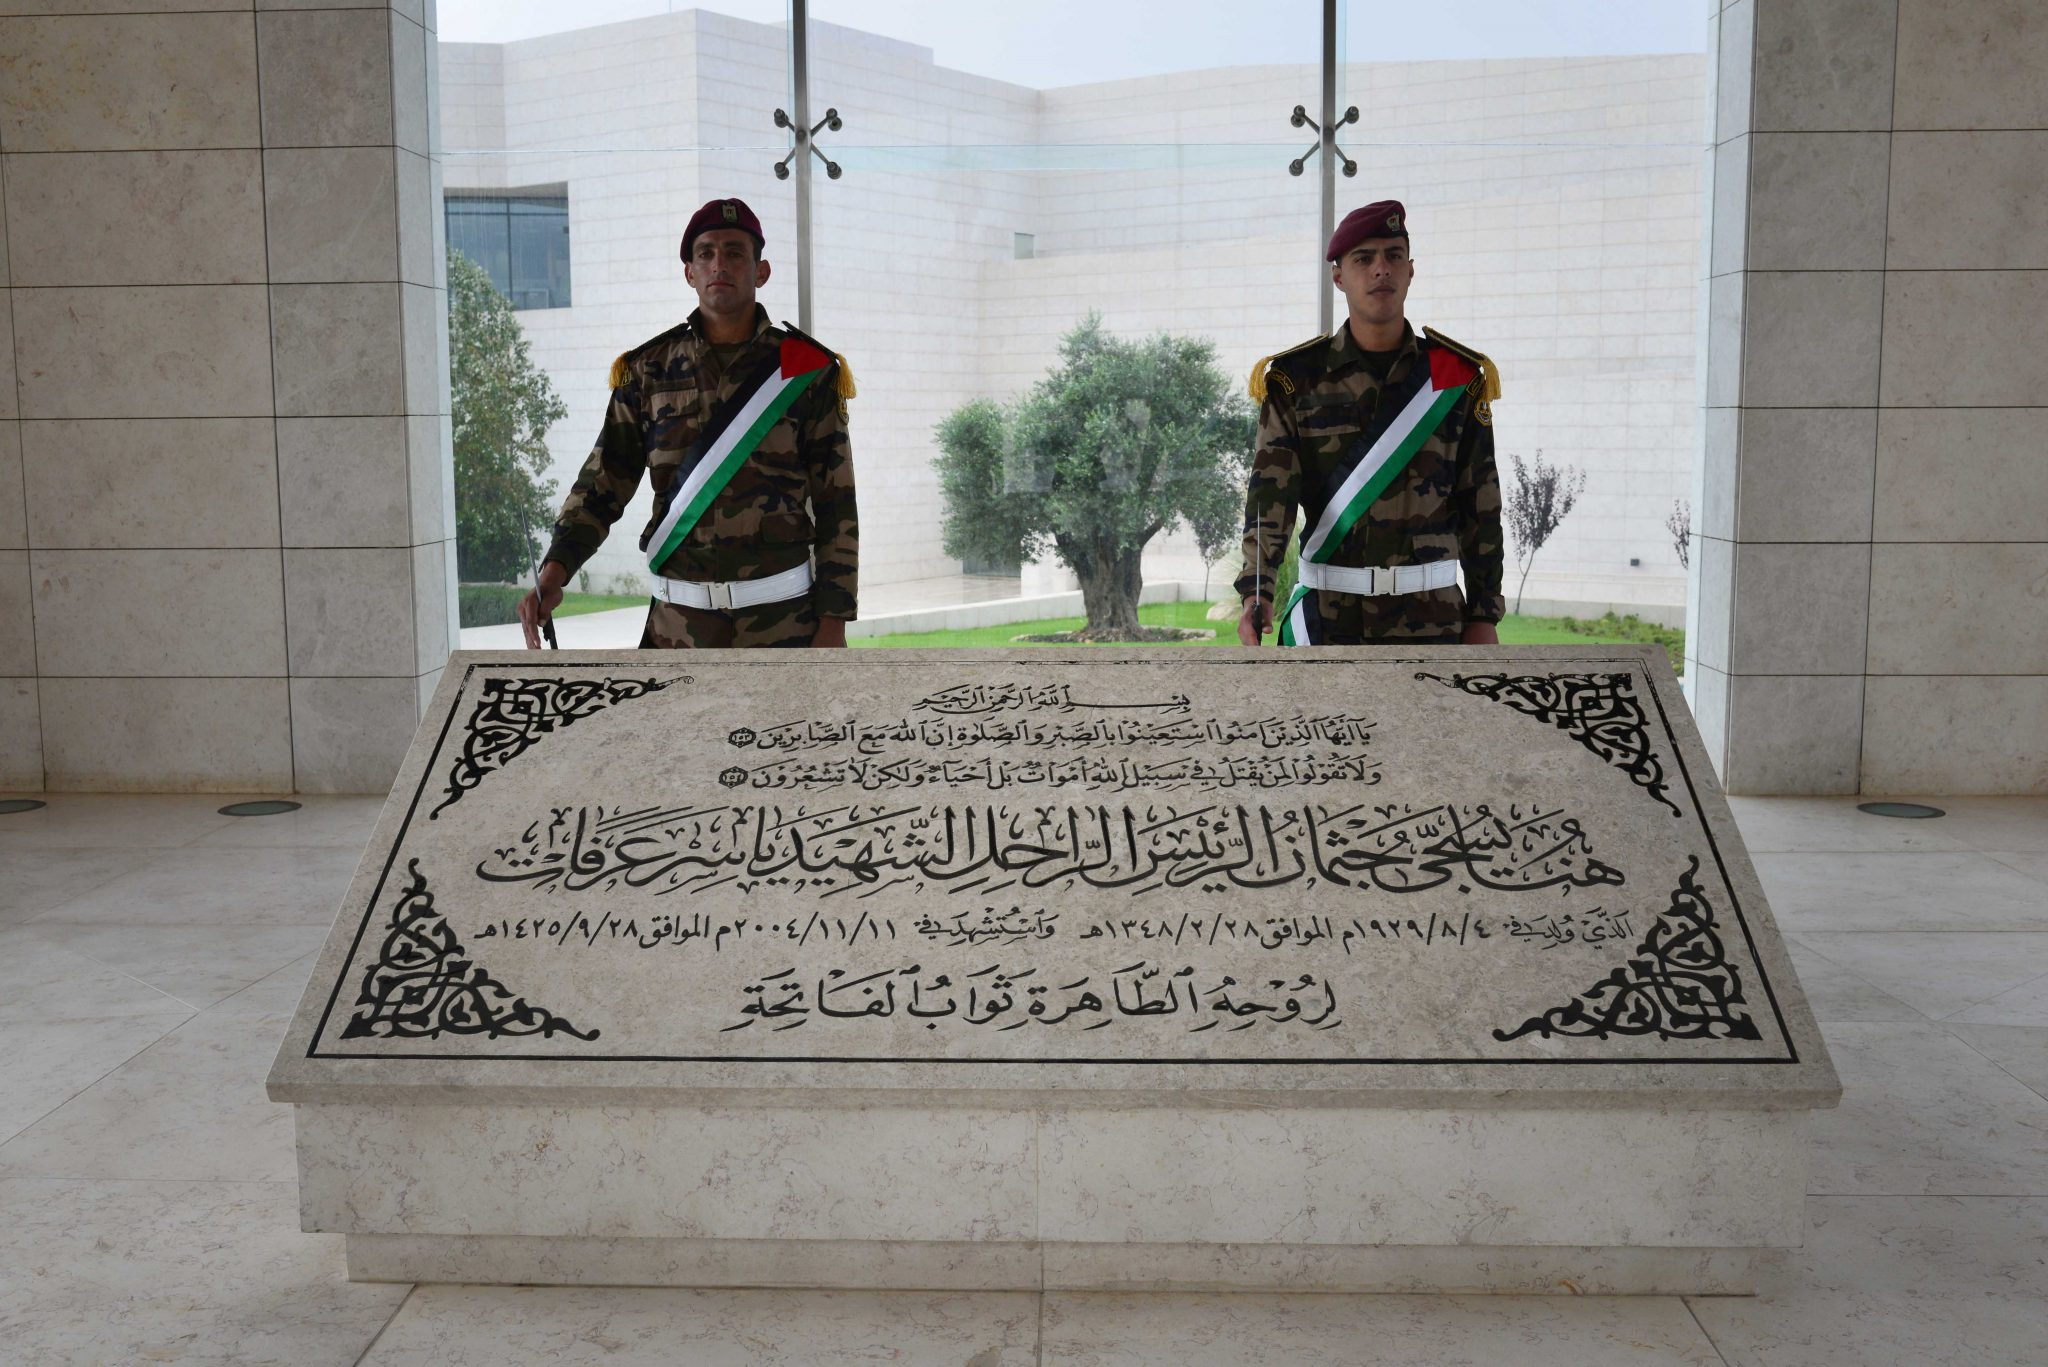 Tomb of Arafat, Ramallah